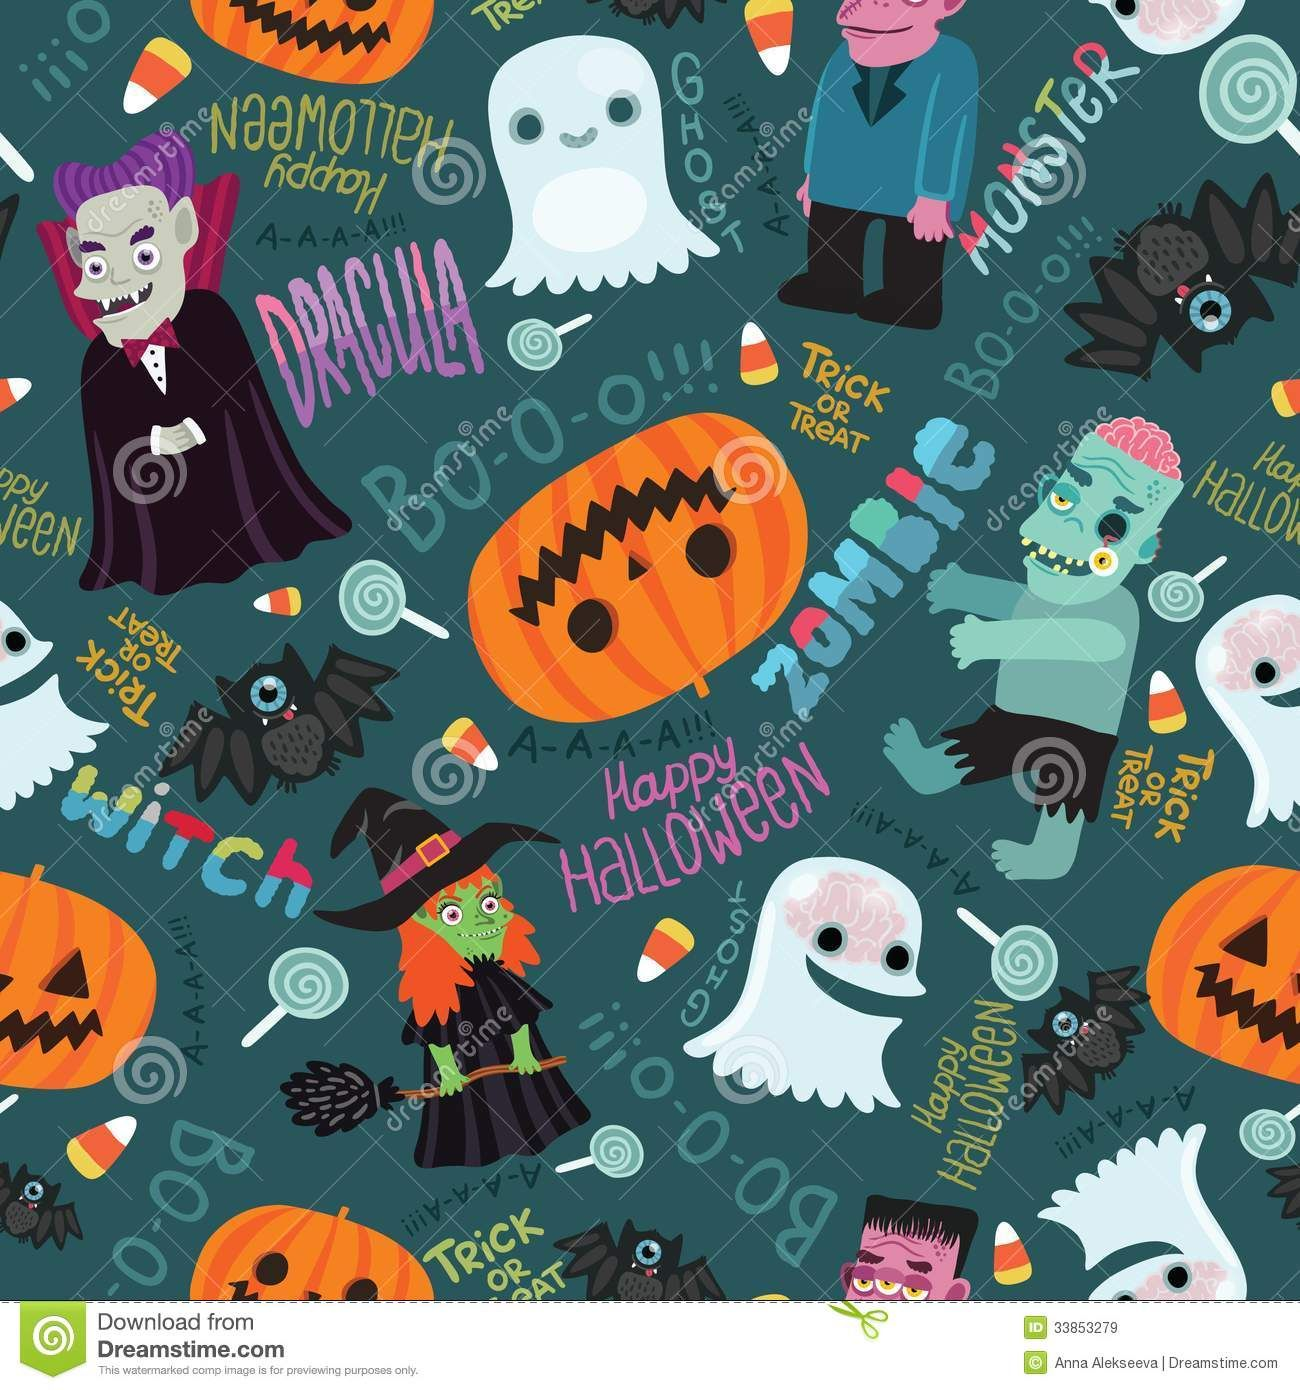 http://thumbs.dreamstime.com/z/happy-halloween-seamless ...